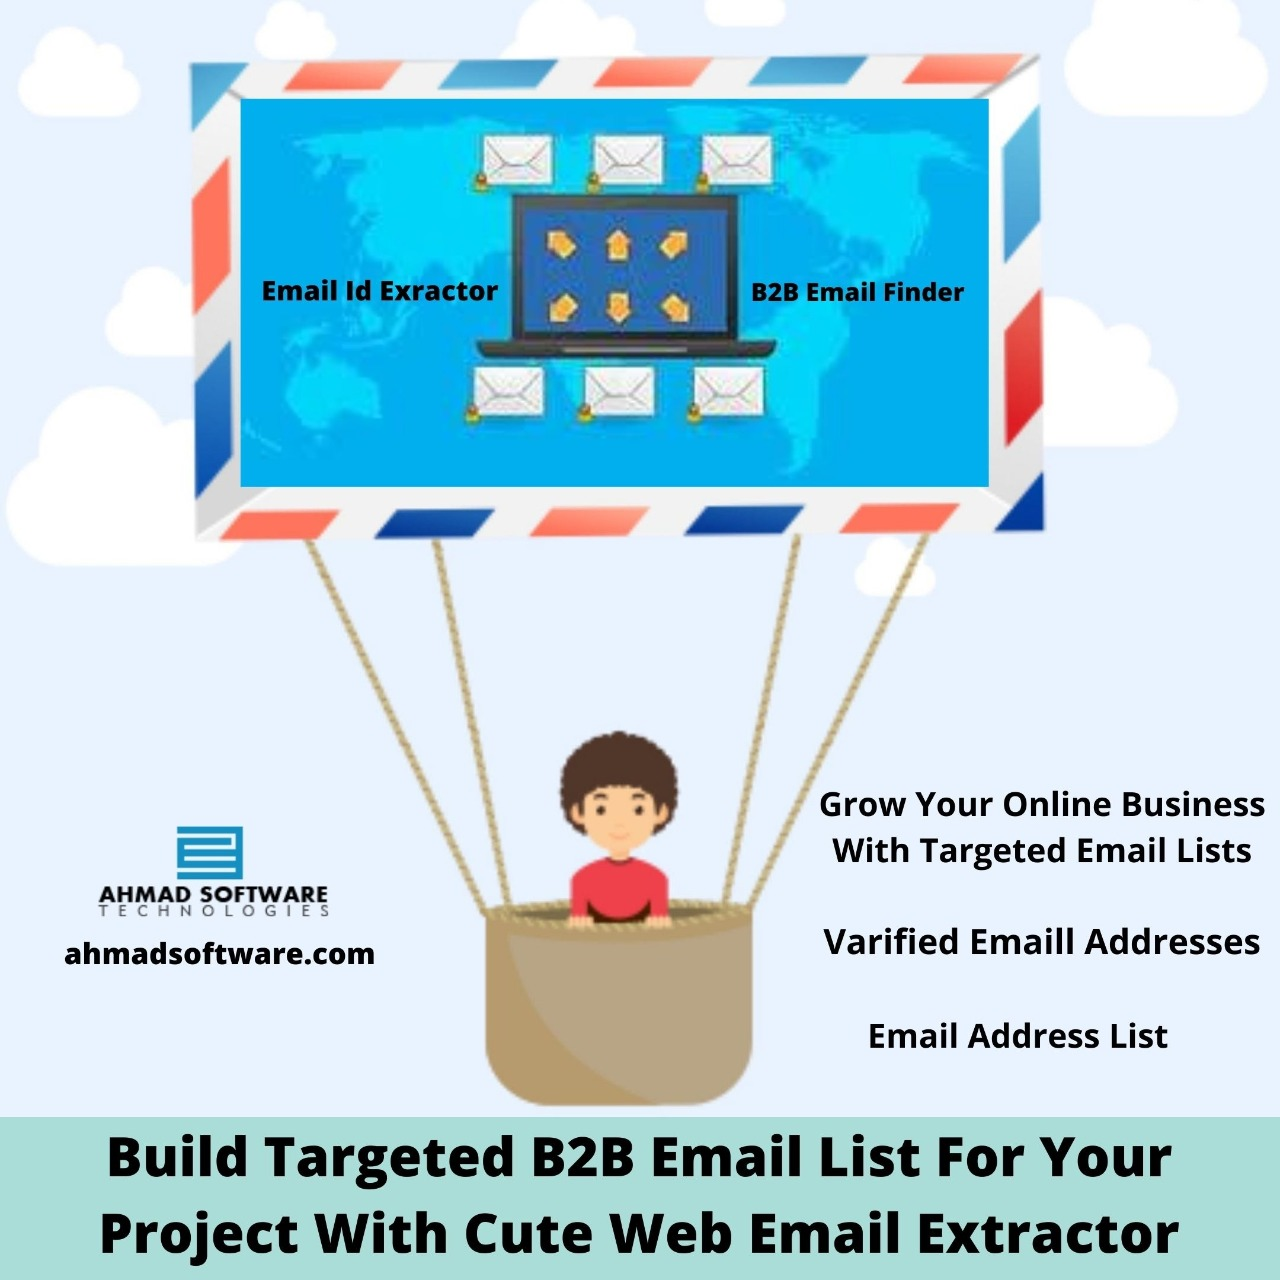 Build Targeted B2B Email List For Your Project